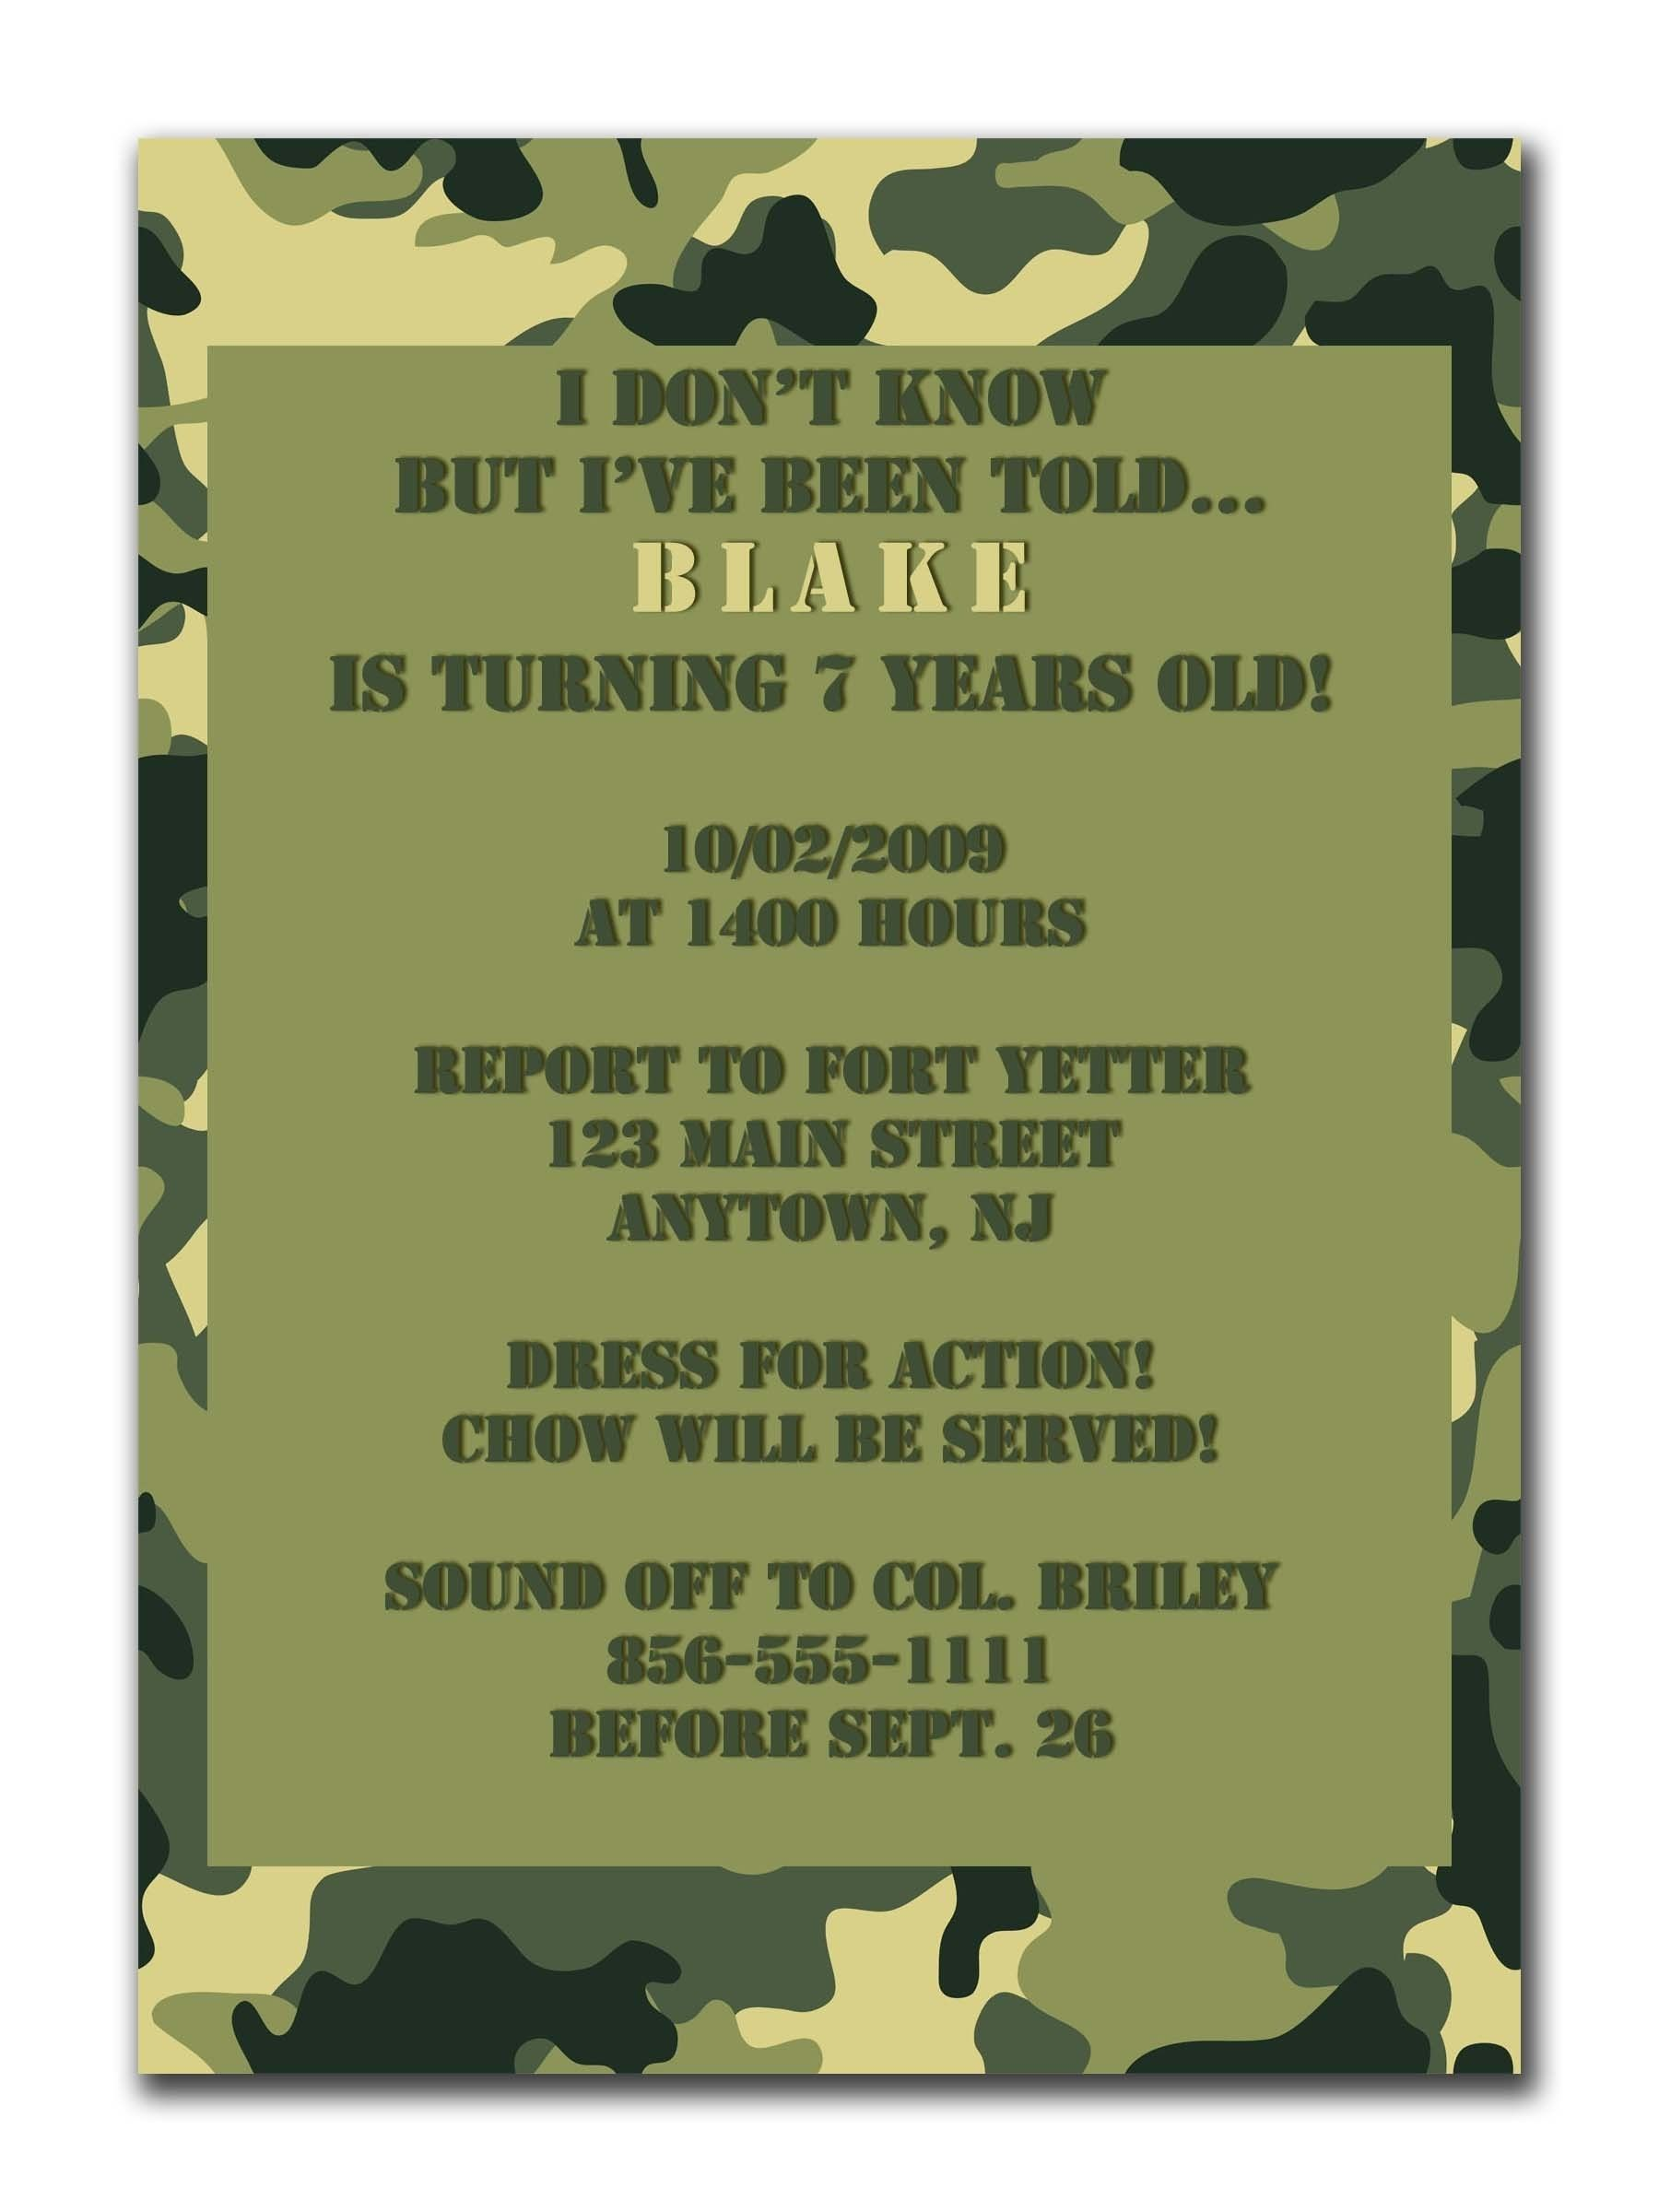 Image detail for printable army stationery takaaki henmi